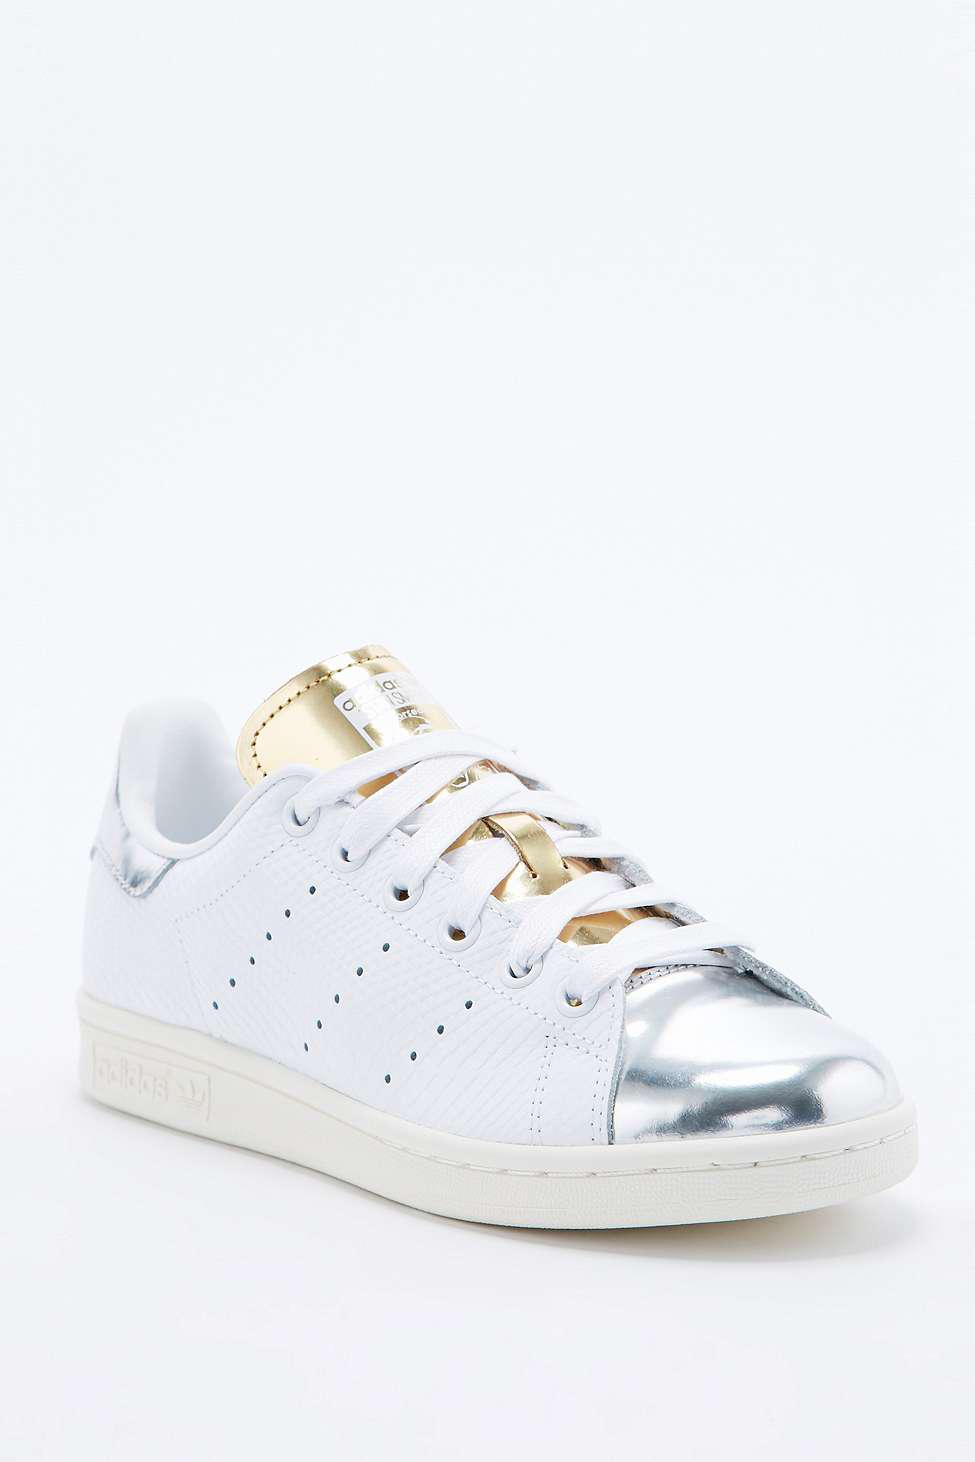 énorme réduction 16e01 89e7d Adidas Stan Smith Silver Toe Trainer - from Urban Outfitters